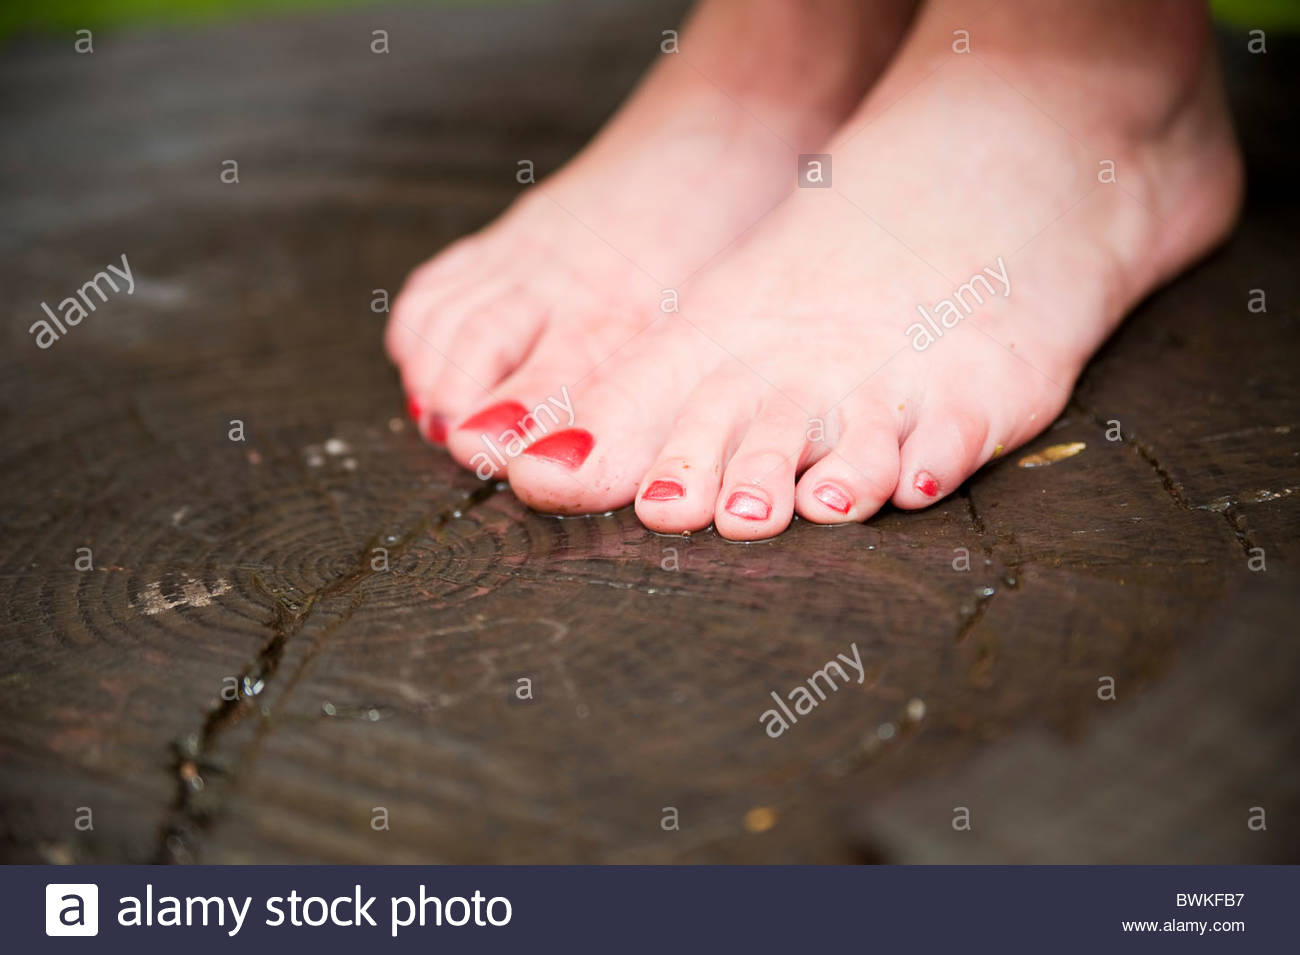 Woman barefoot - Stock Image